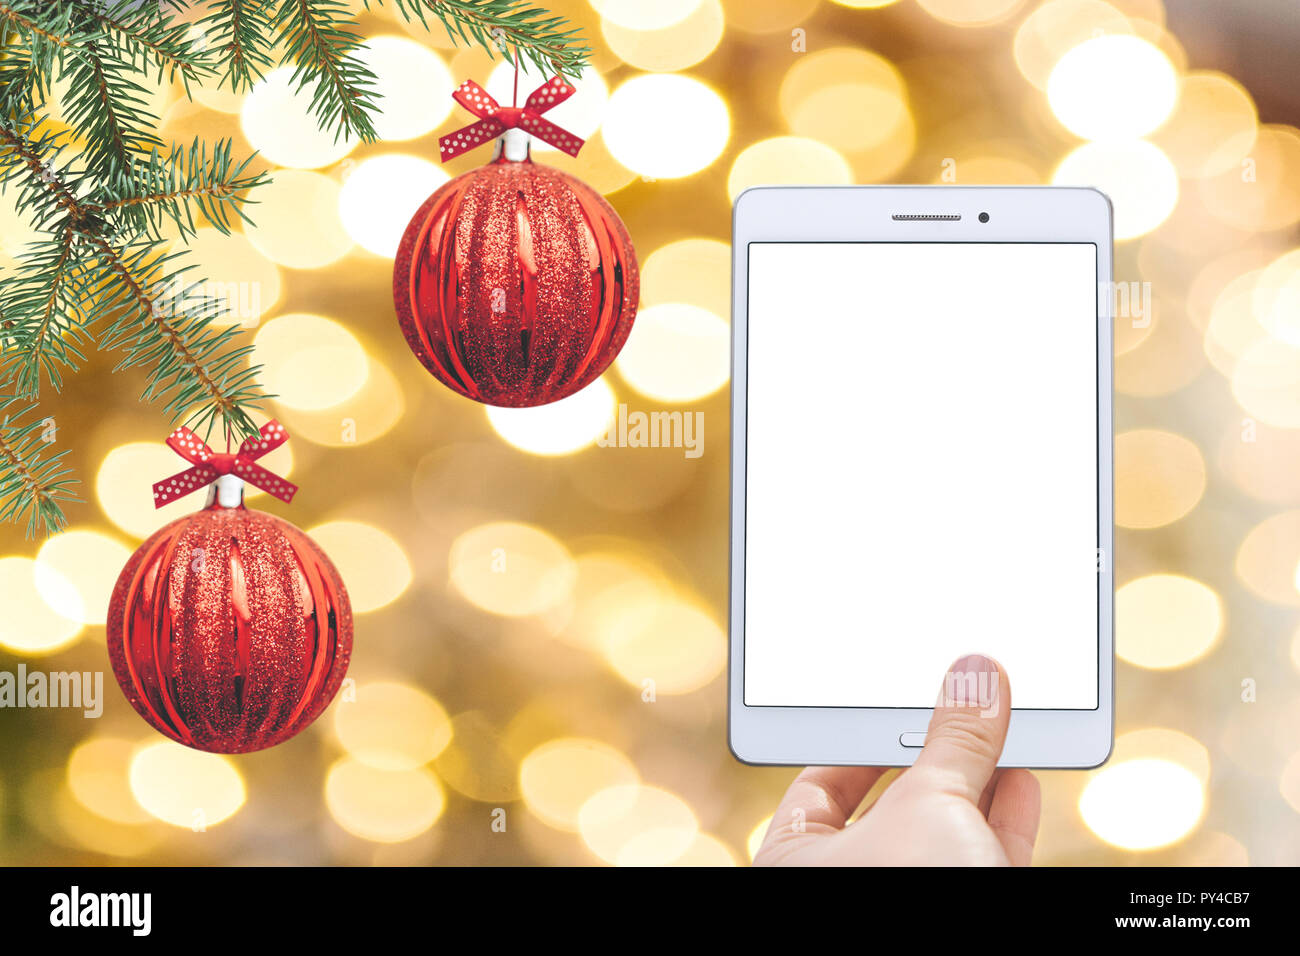 christmas online sale tablet for buying gifts online tablet with an empty white screen on the background of christmas decorations